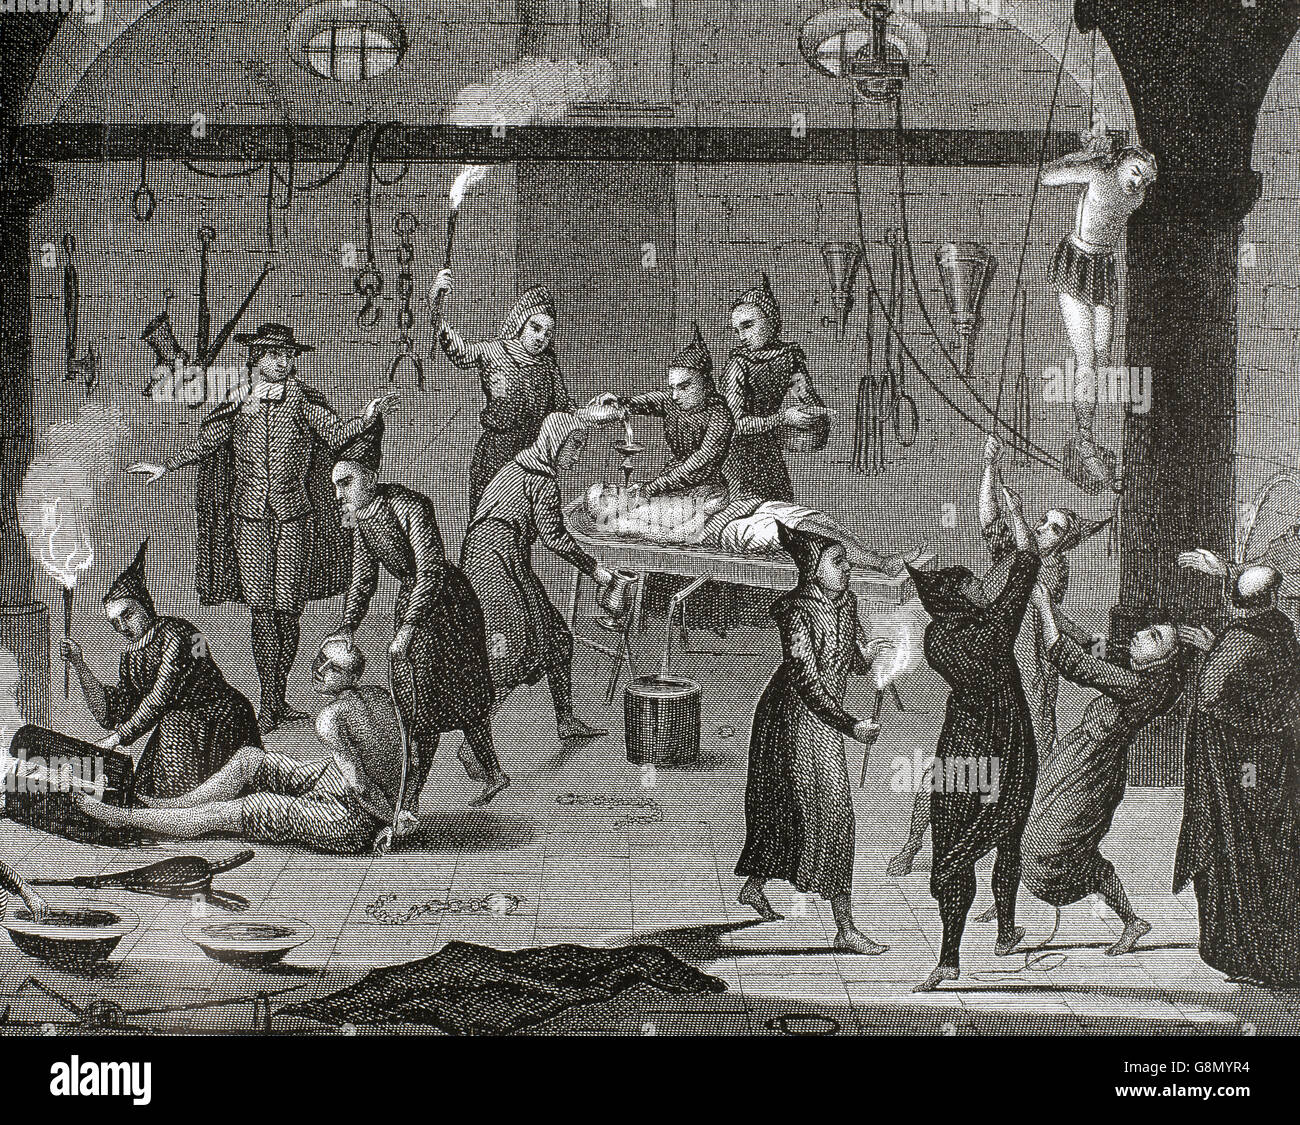 Middle ages. Torture chamber. Engraving depicting different types of physical torture. - Stock Image